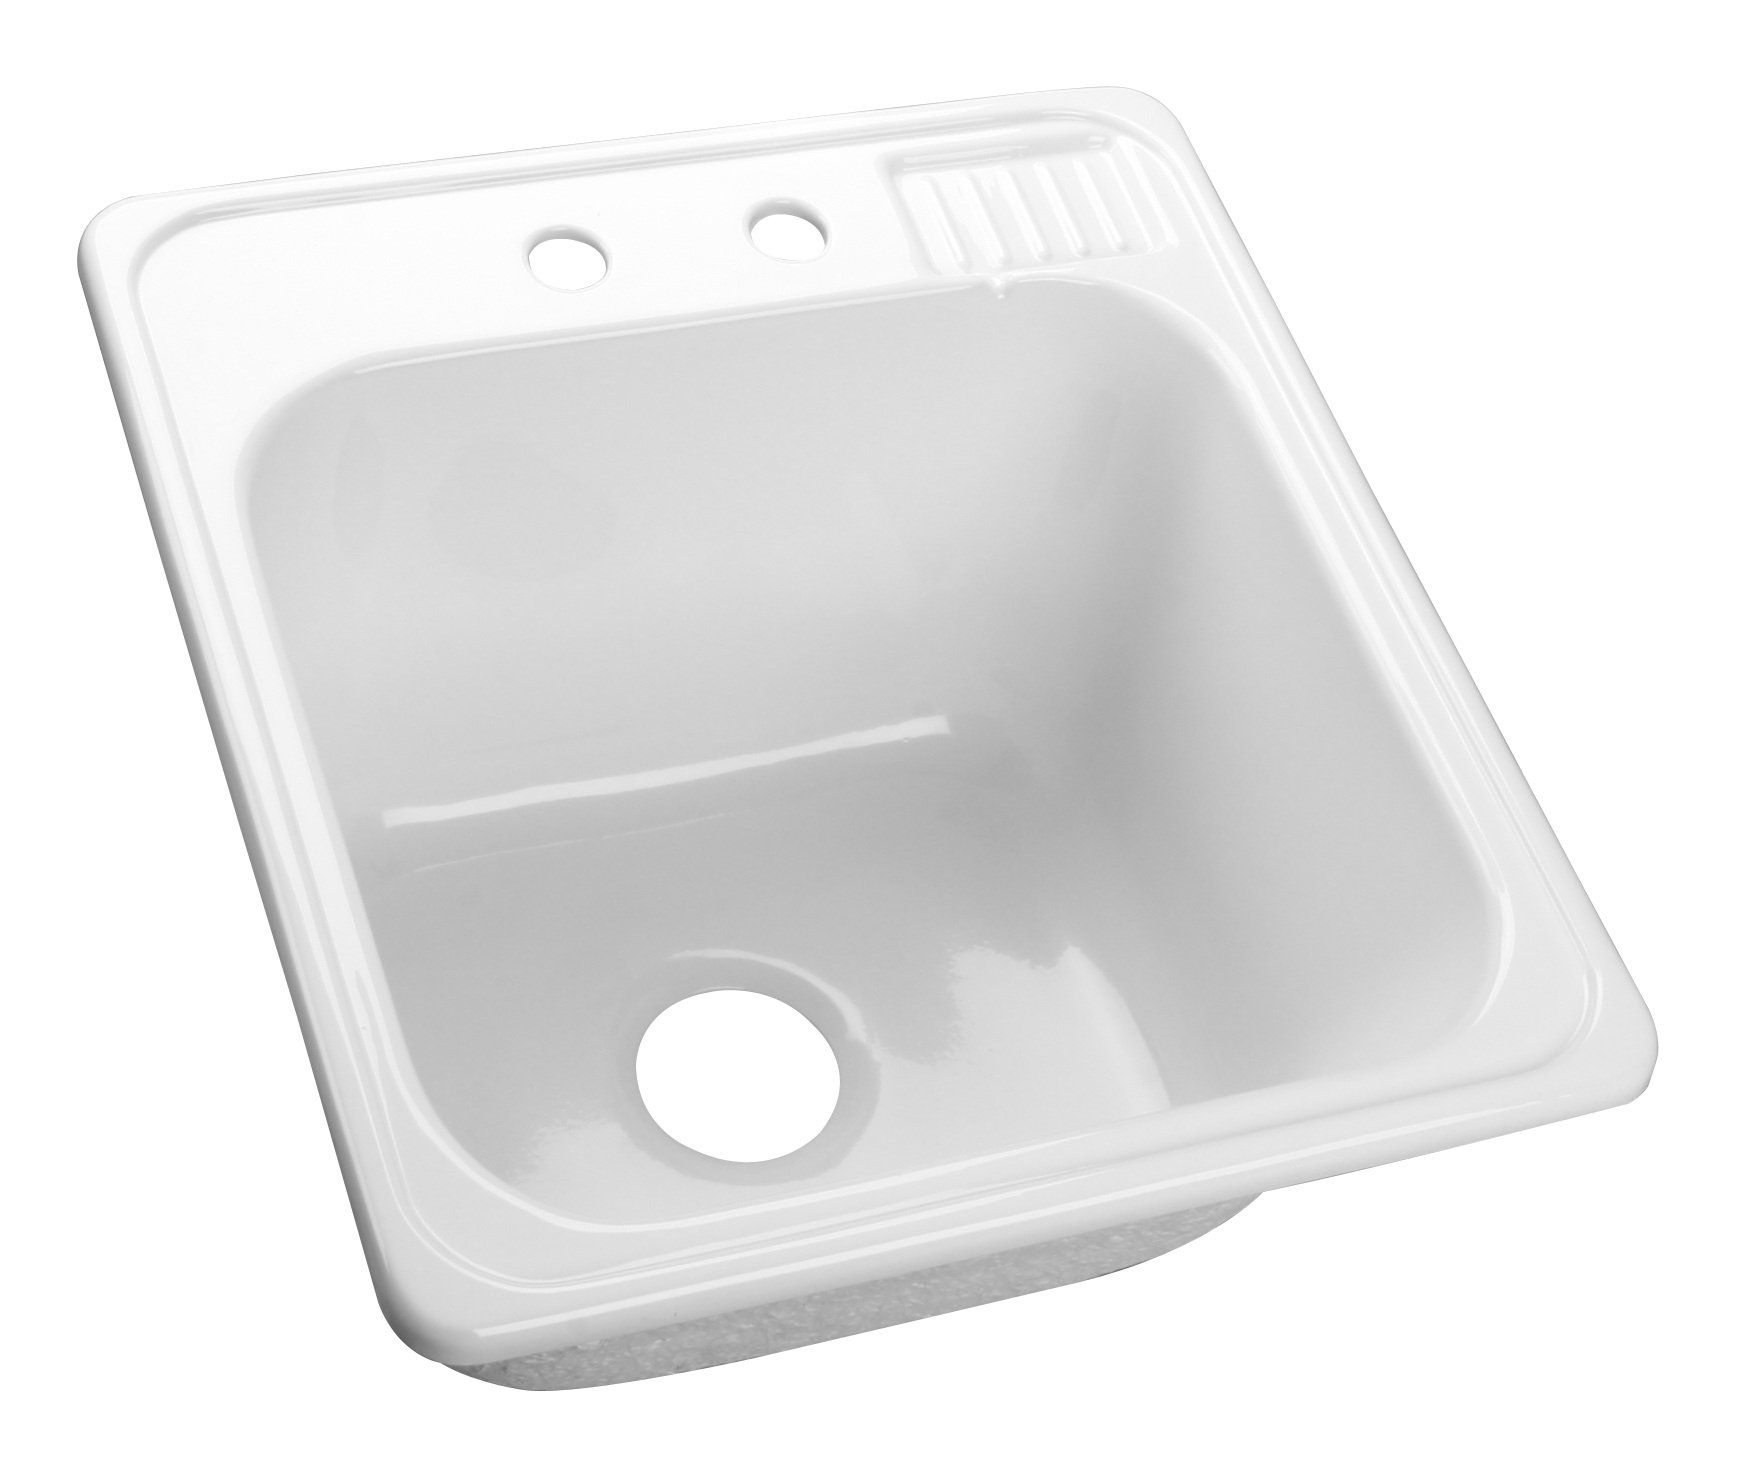 lyons industries dlt01 white acrylic selfrimming laundry tub 22inch by 20 laundry tubslaundry